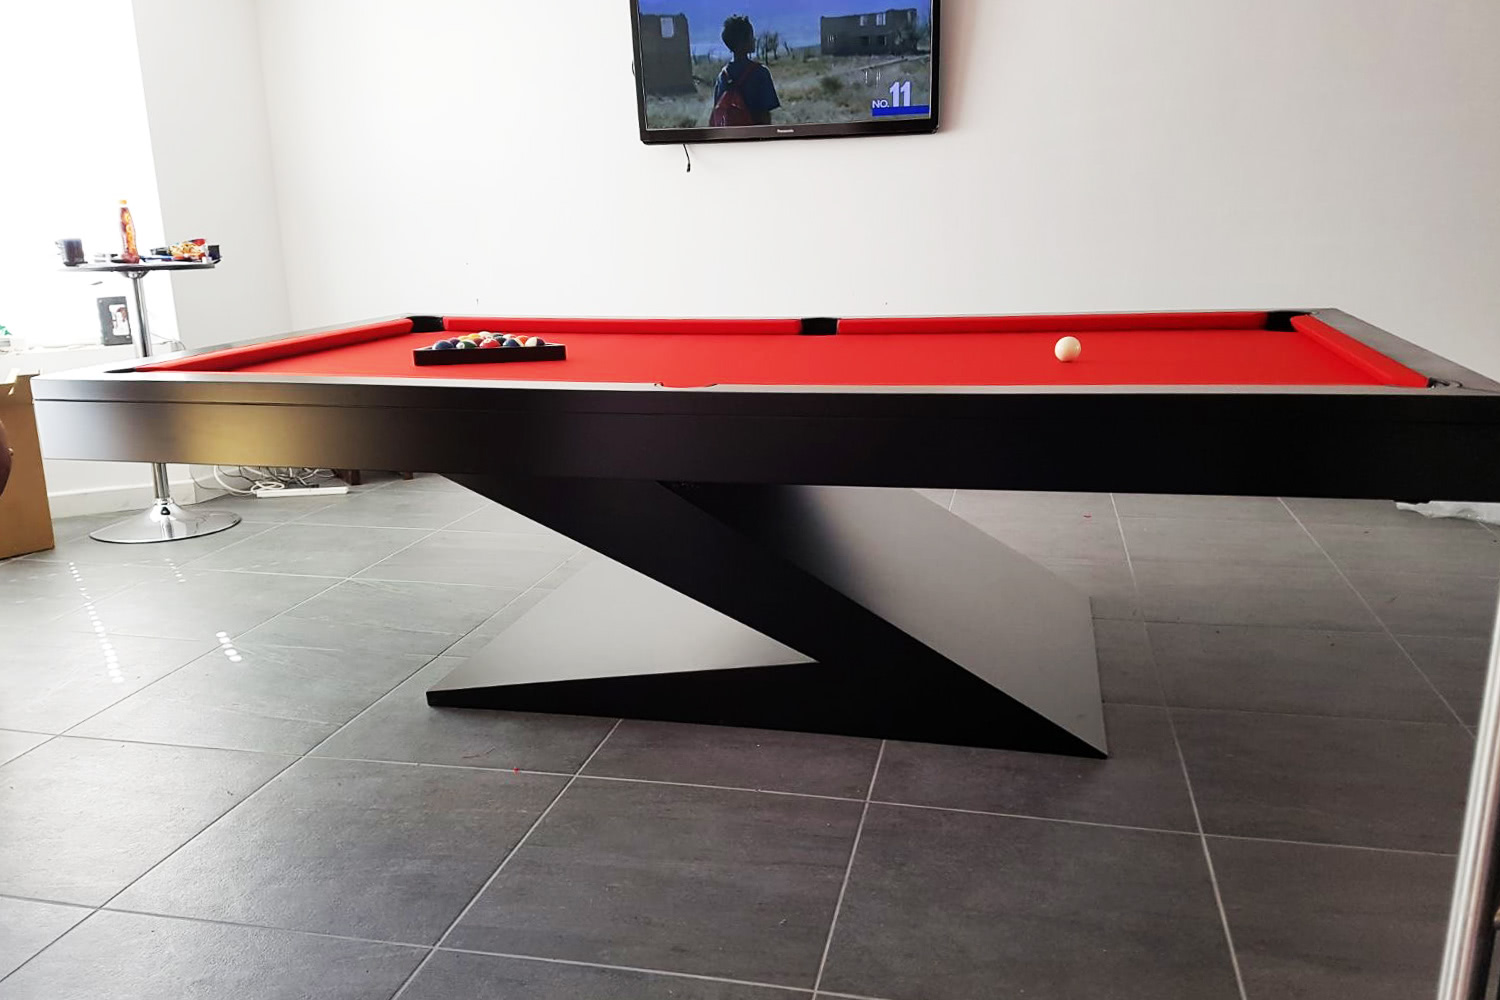 Zen Pool Table In Black With Red Cloth